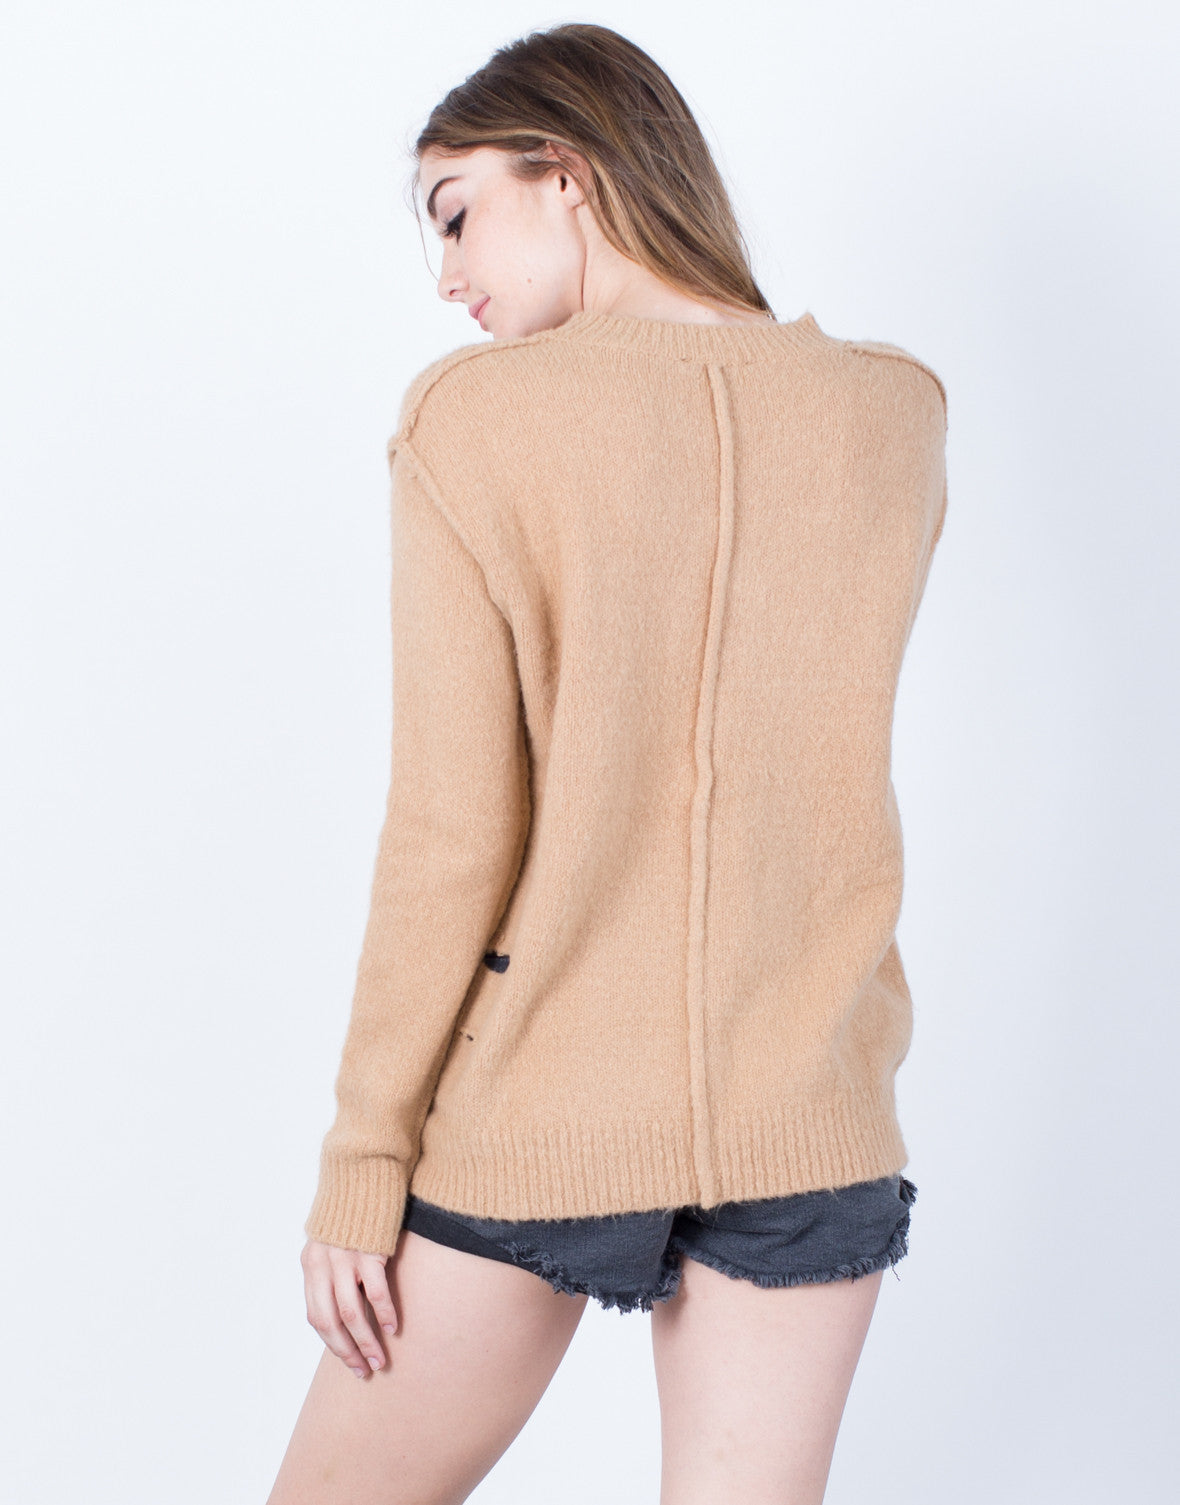 Back View of Destroyed Soft Sweater